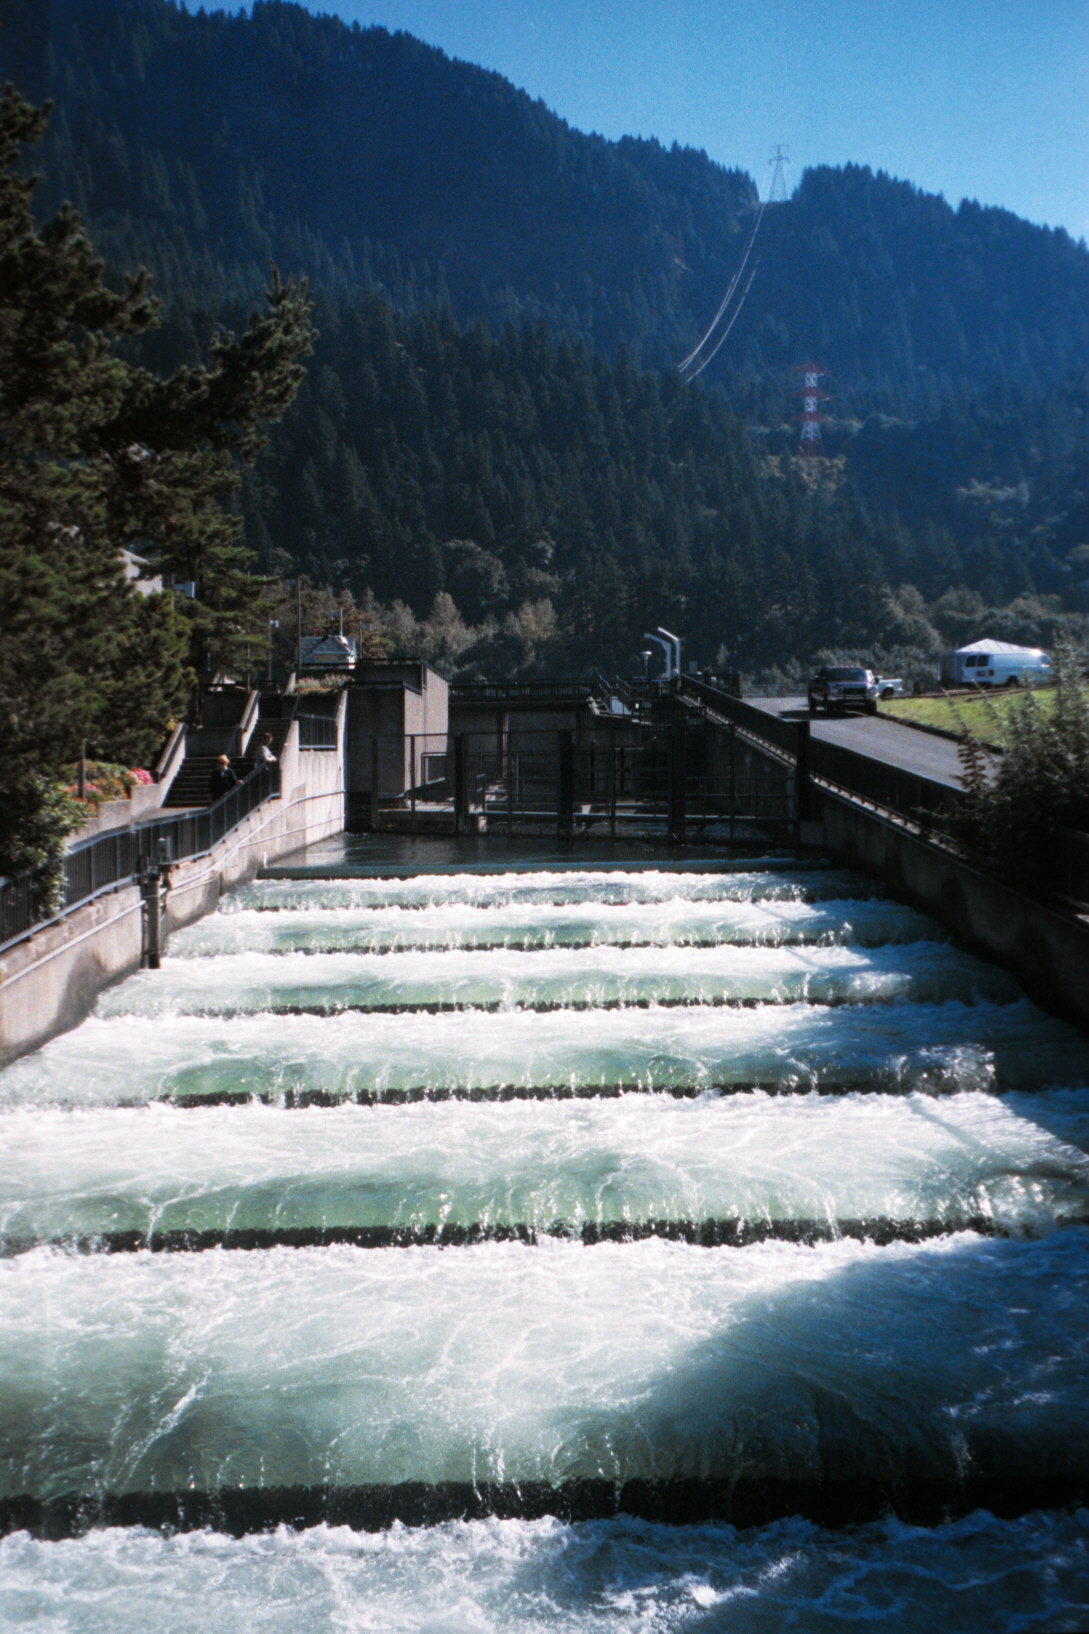 The Fish Ladders